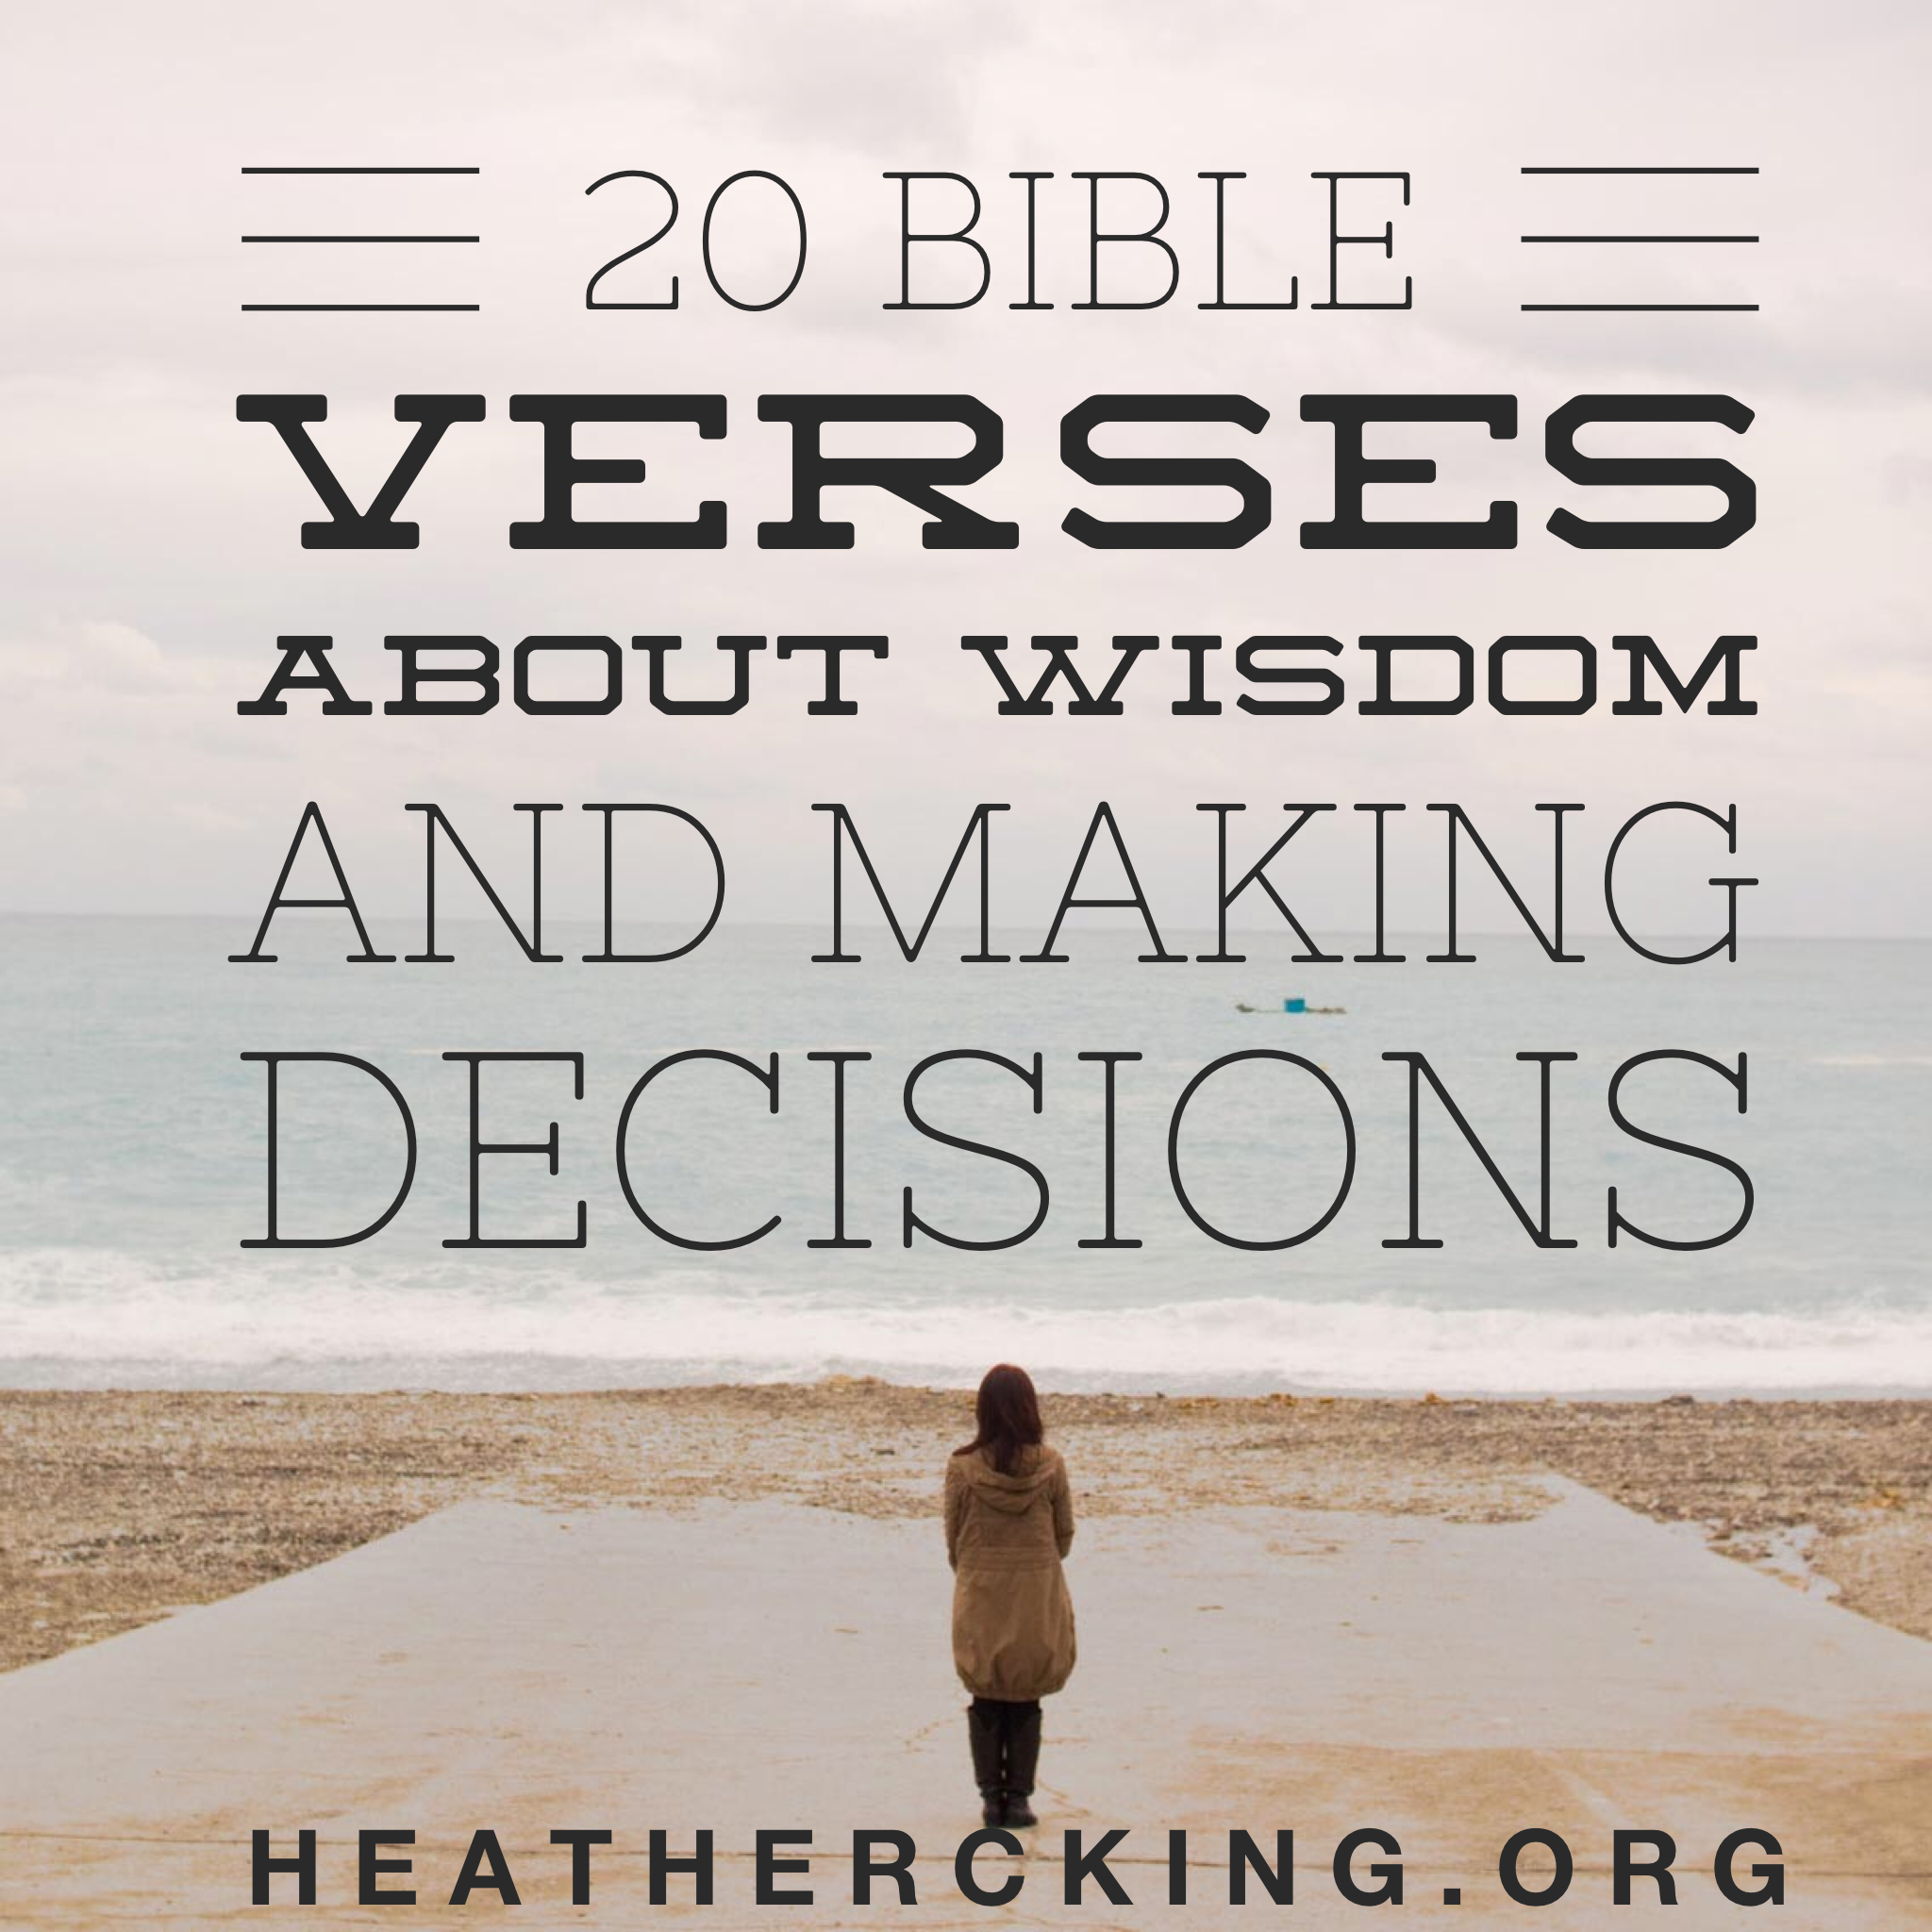 Bible Quote: Bible Verses About Wisdom And Making Decisions